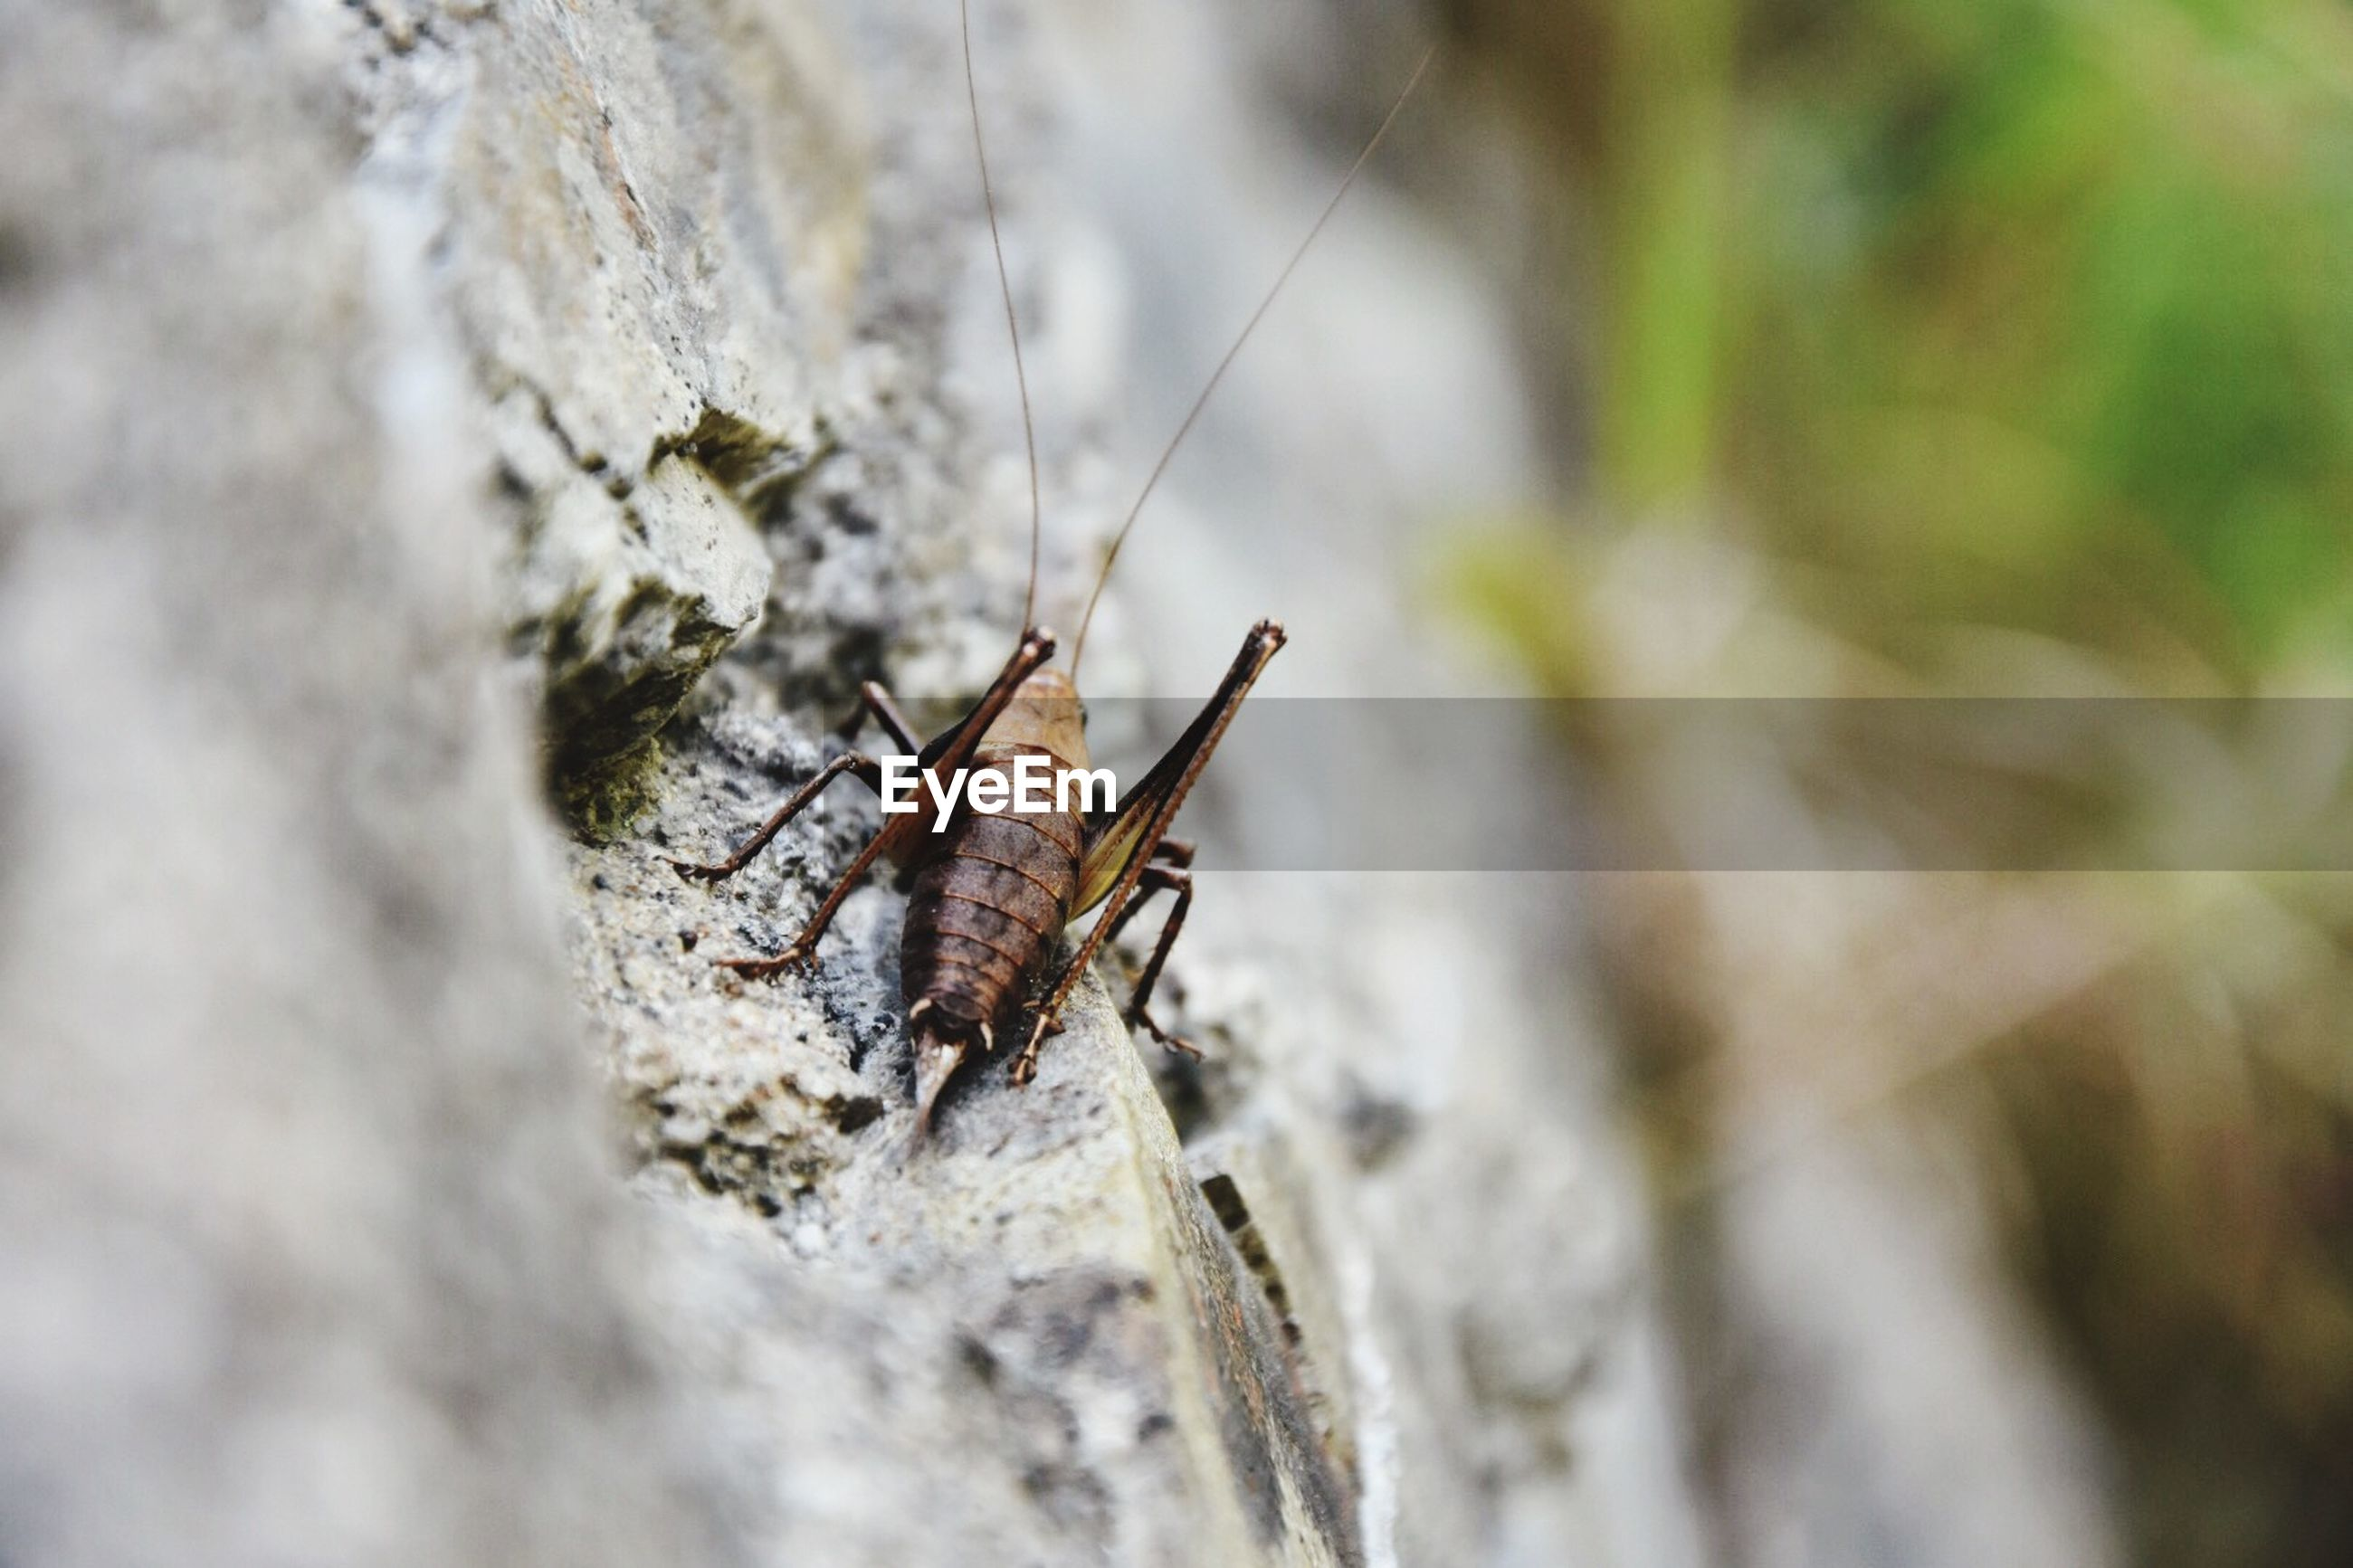 insect, animal themes, animals in the wild, one animal, wildlife, close-up, focus on foreground, selective focus, nature, spider, outdoors, animal antenna, arthropod, full length, day, animal wing, zoology, no people, invertebrate, high angle view